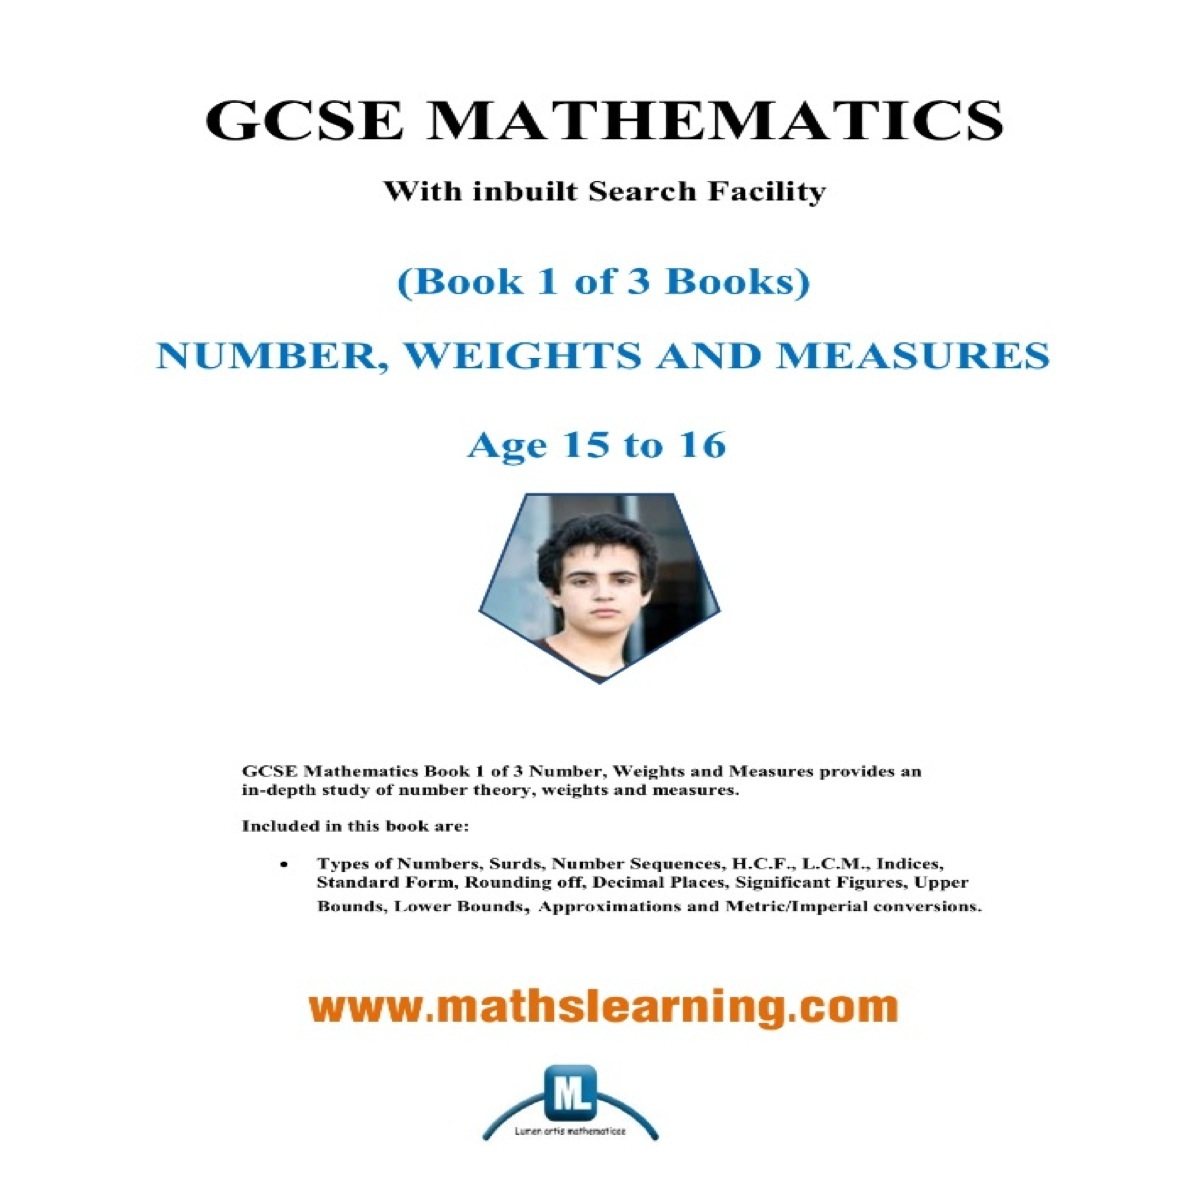 GCSE Mathematics Number, Weights, and Measures